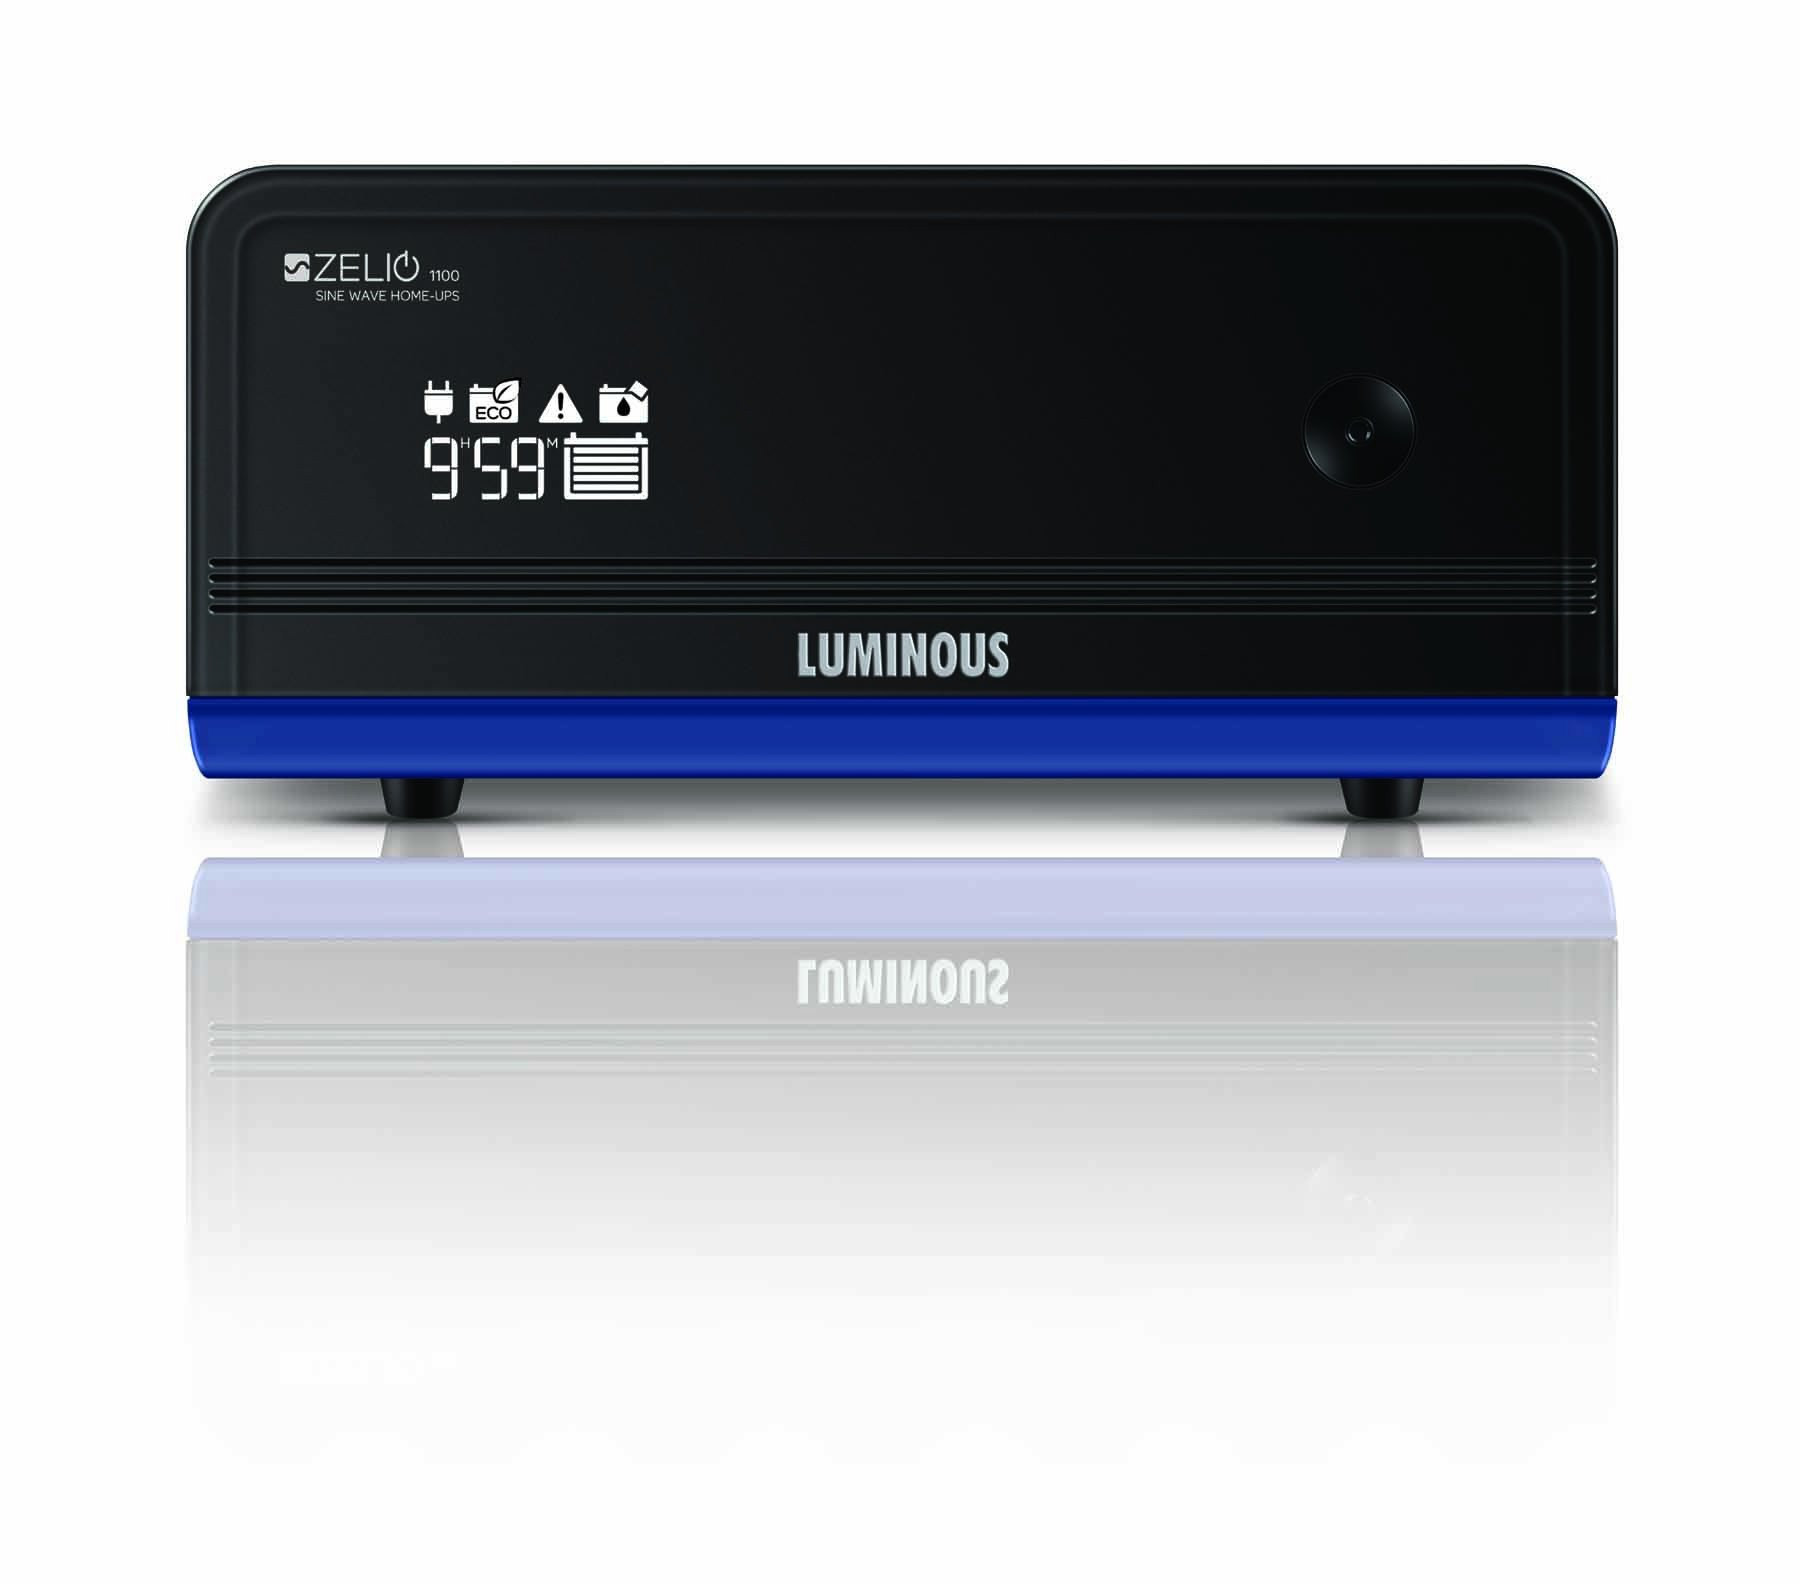 Luminous Zelio+ 1100 Home UPS Inverter Pure Sinewave 2 Years warranty